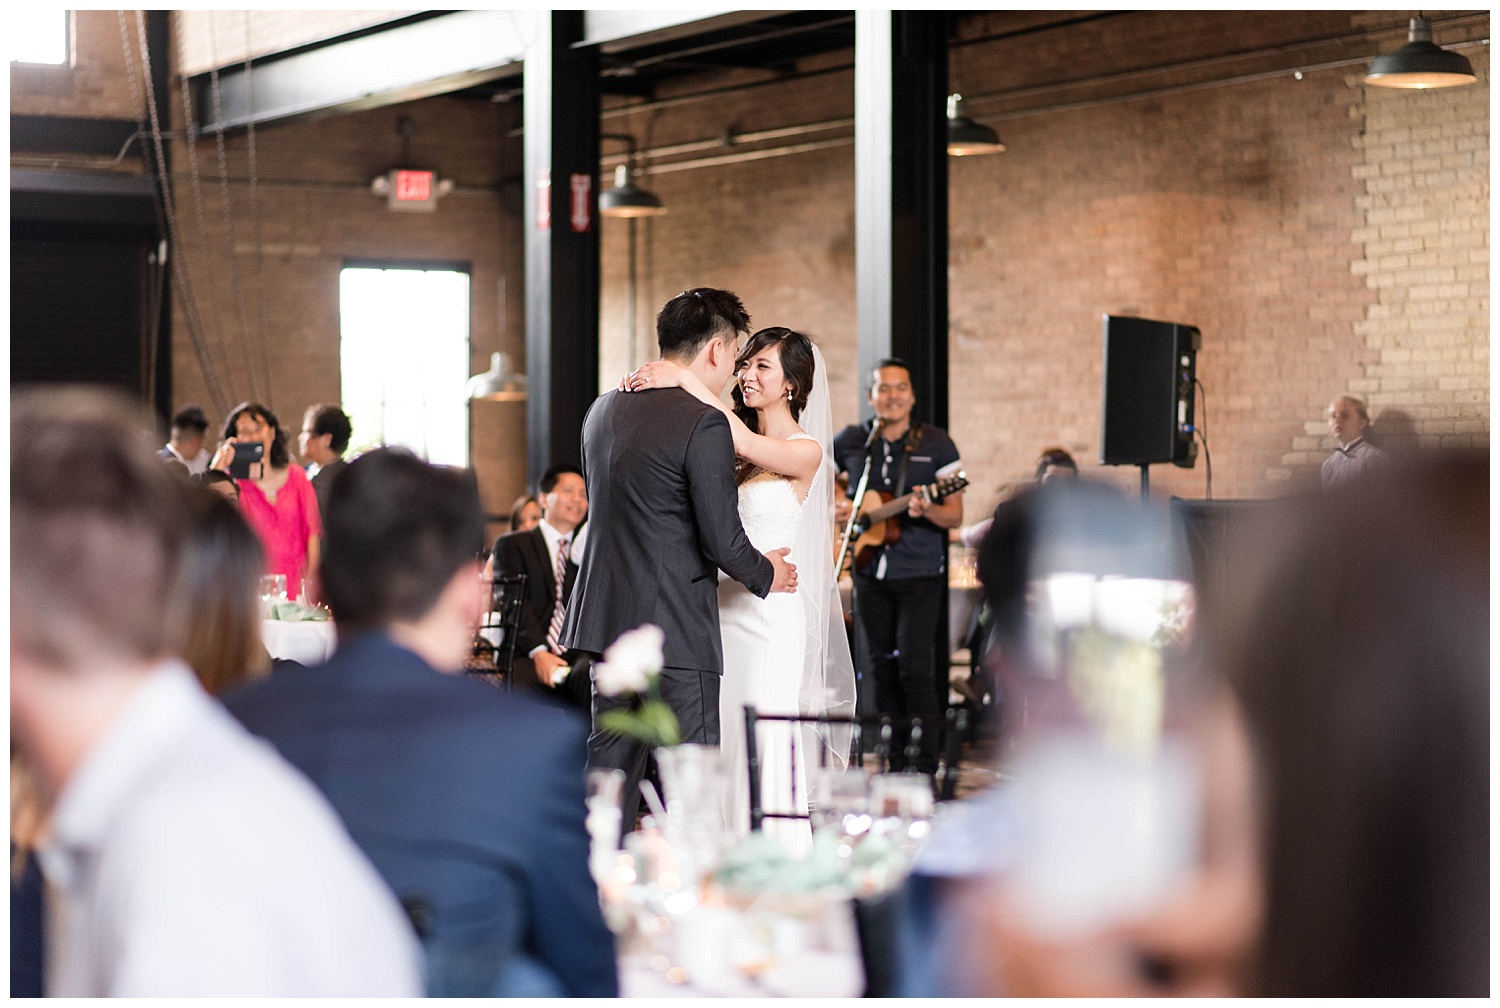 Weddings_by_Raisa_Photography_Saint_Mary_Magdalen_New_Vintage_Grand_Rapids_Michigan_Wedding_Photographer_0115.jpg